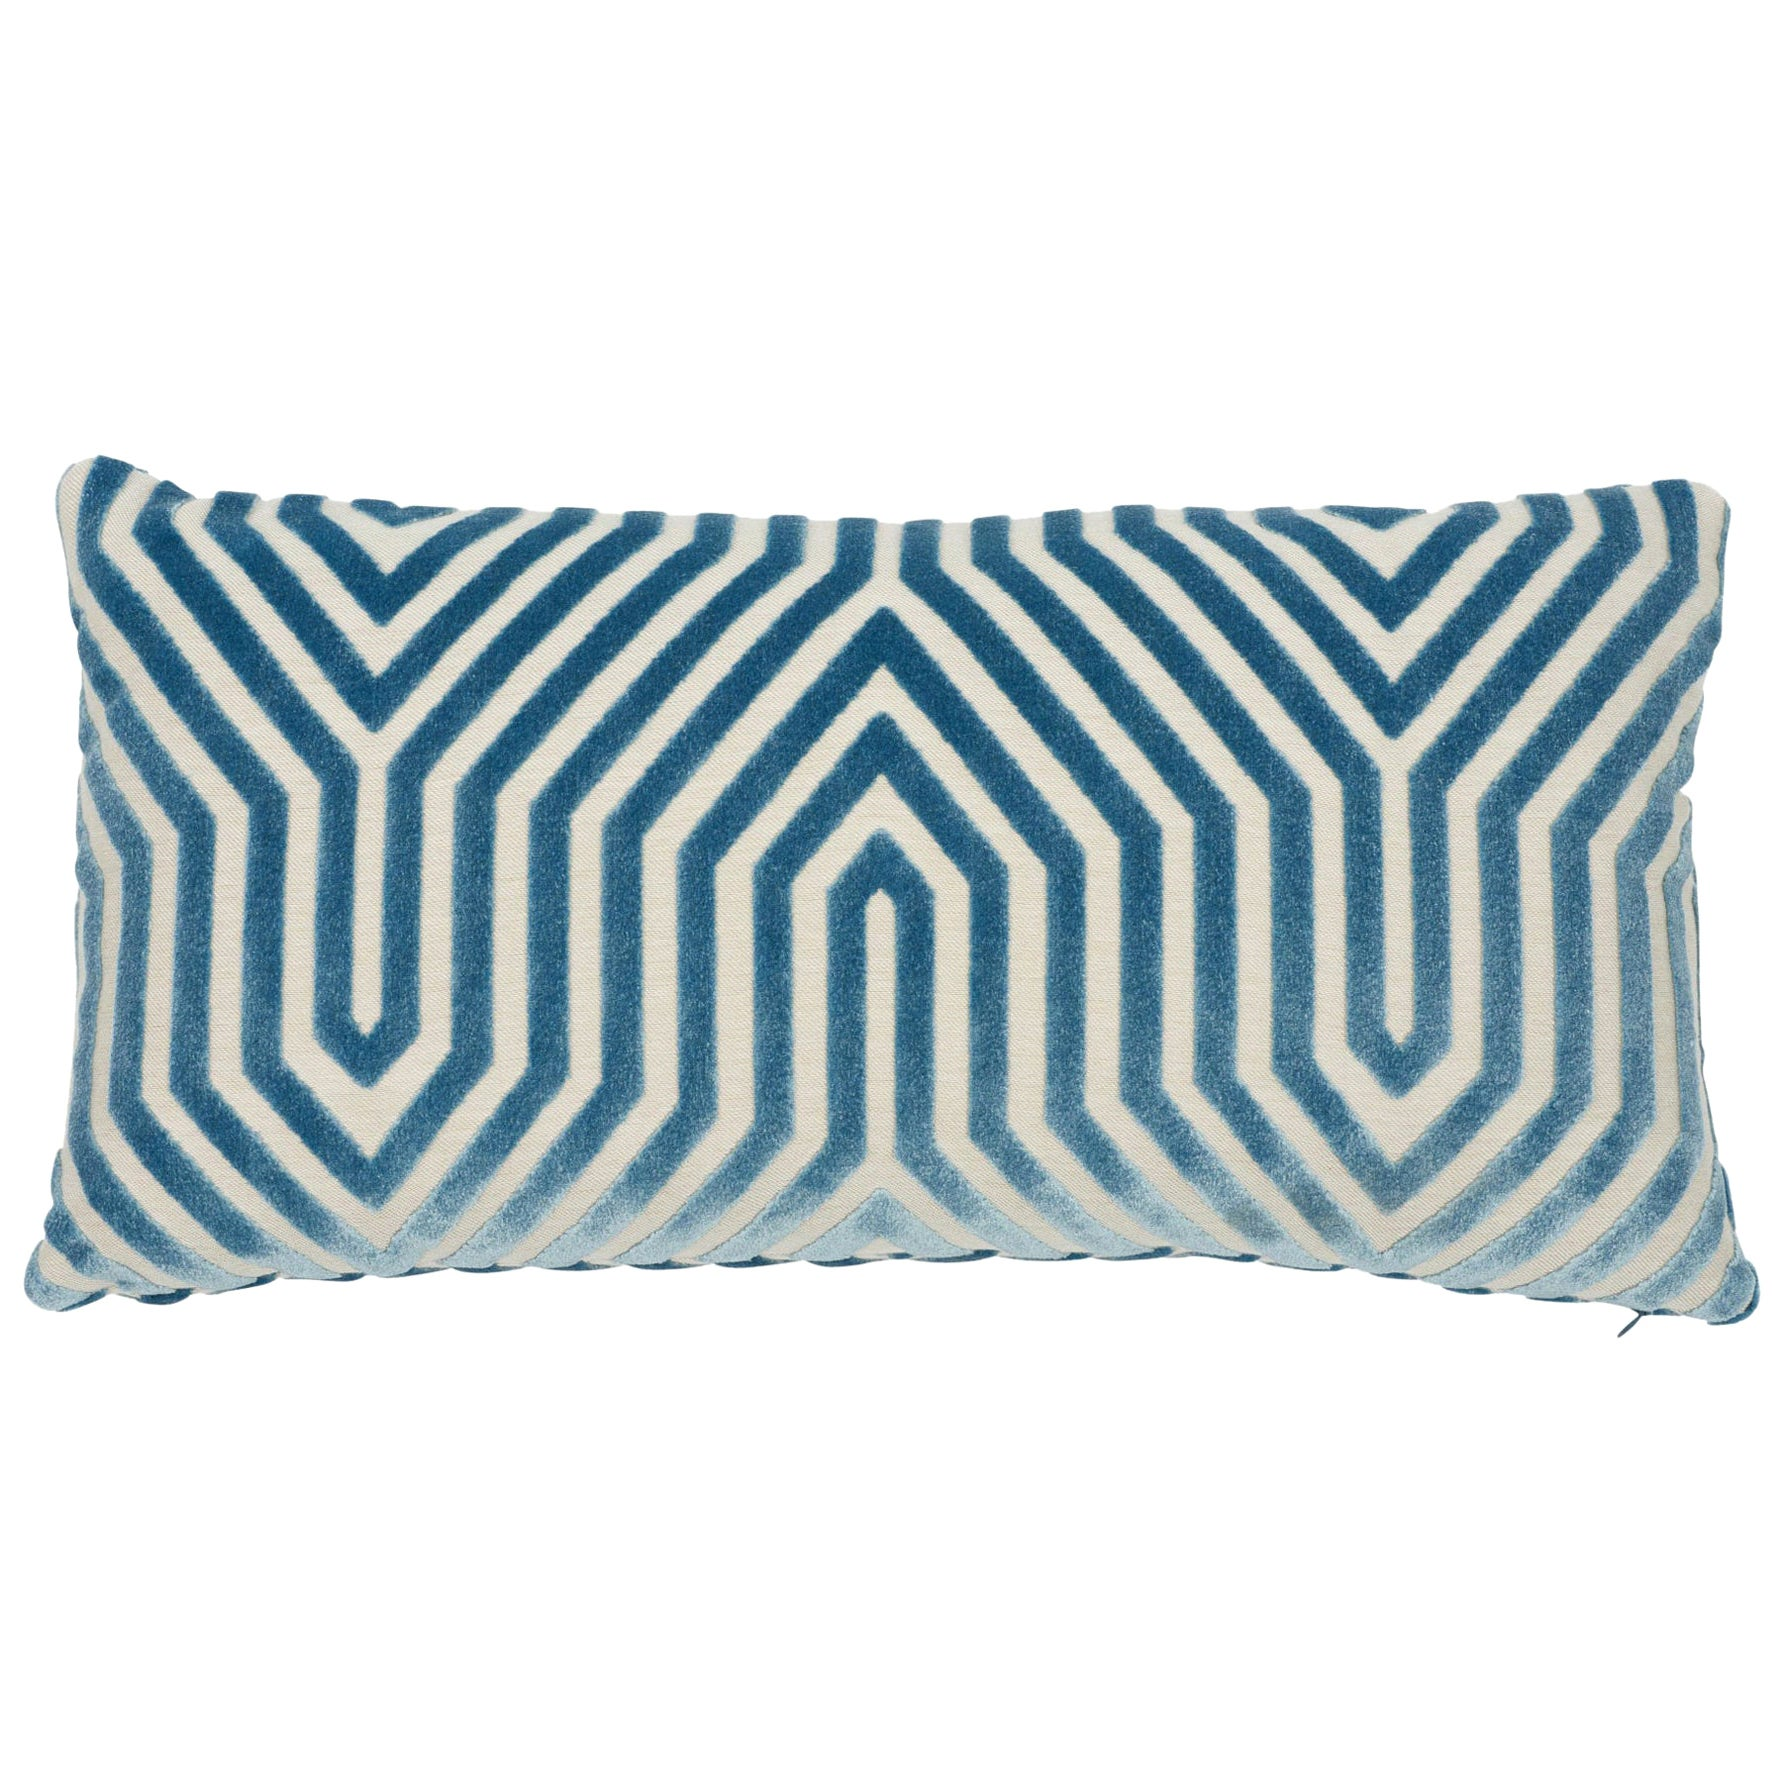 Schumacher Vanderbilt Velvet Marine Lumbar Two-Sided Pillow